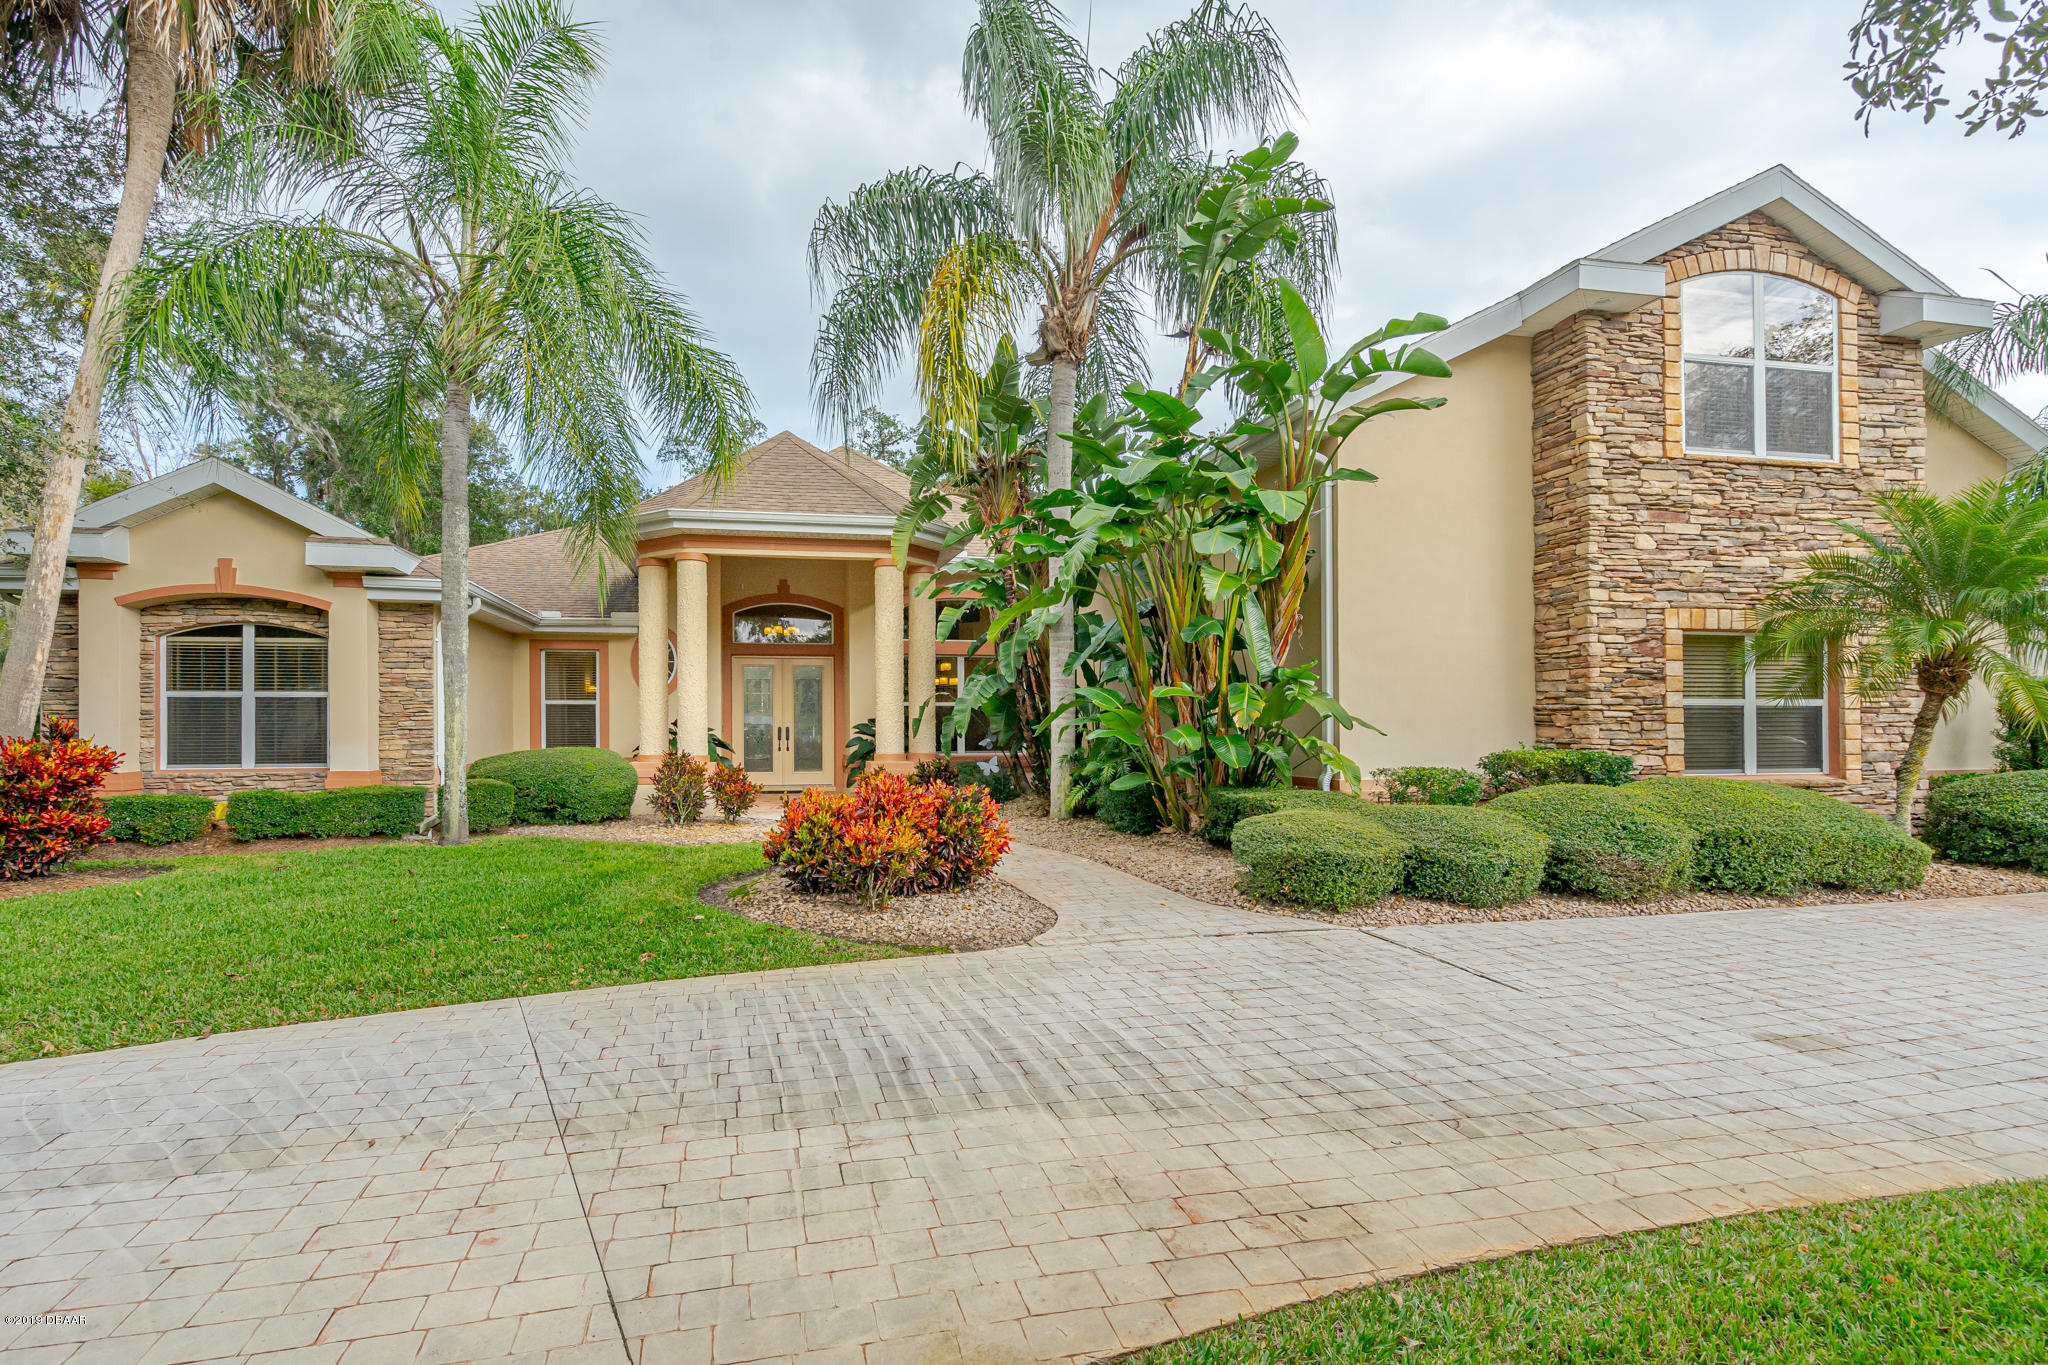 Photo of 82 Emerald Oaks Lane, Ormond Beach, FL 32174